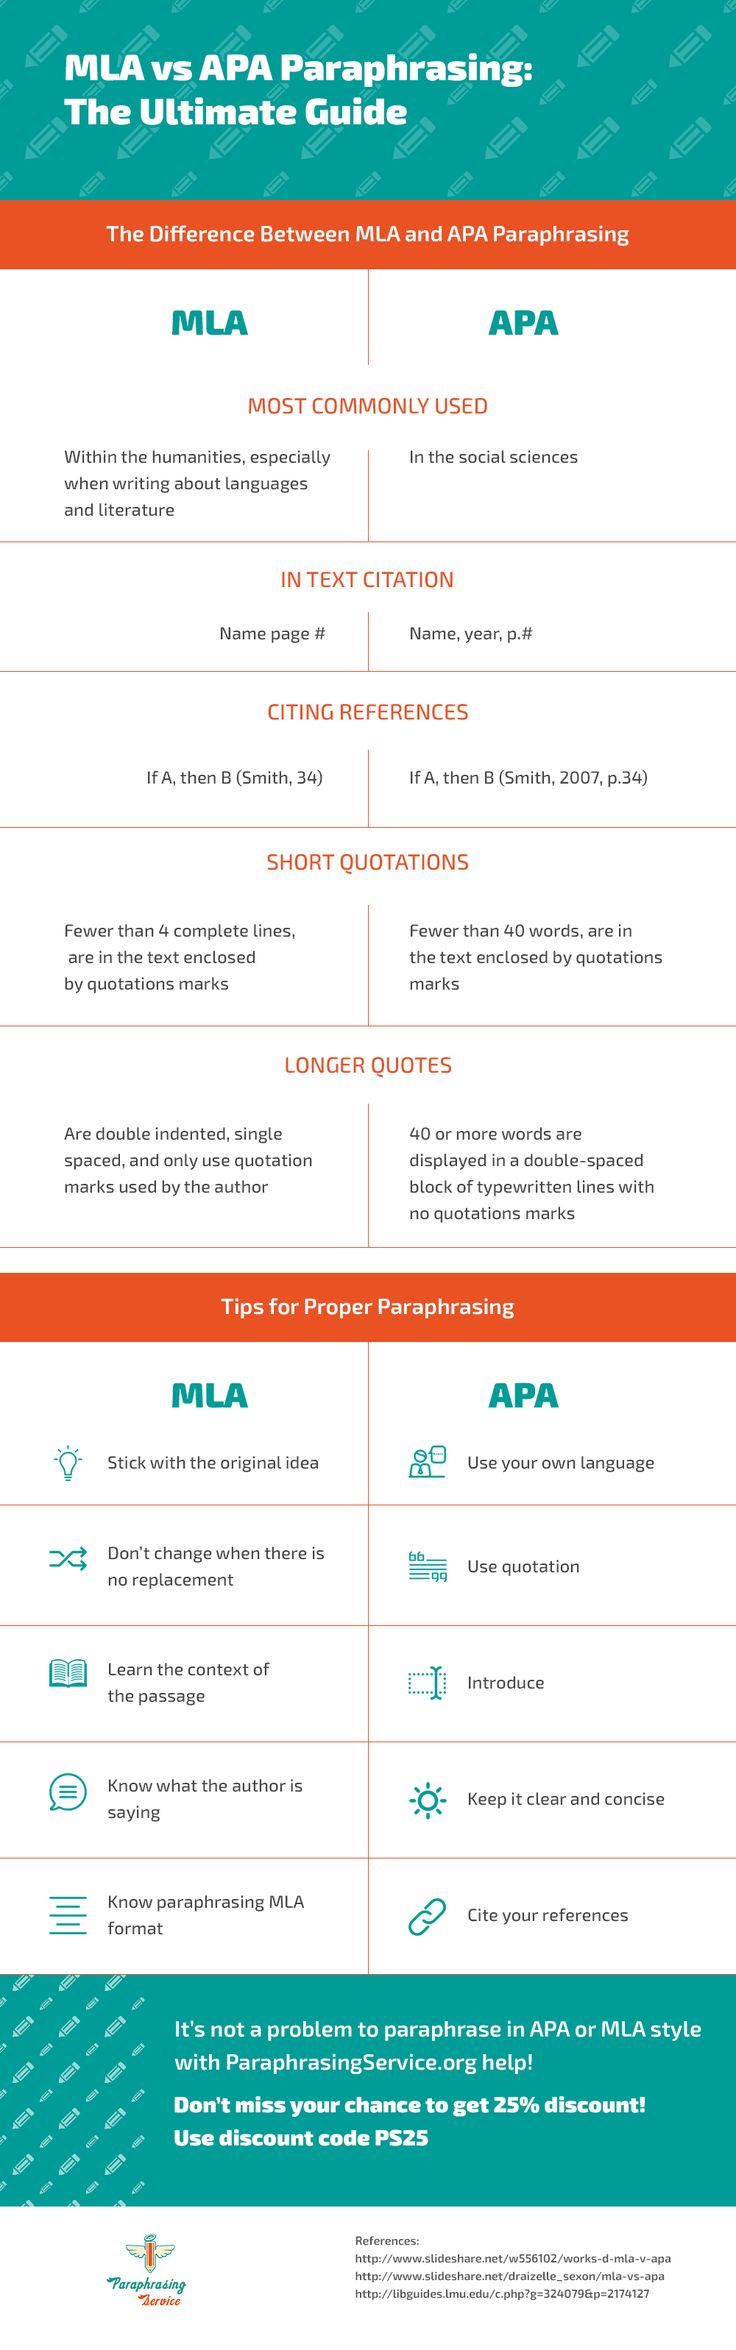 Http Www Paraphrasingservice Org Mla V Apa Paraphrasing The Ultimate Guide Learn When And Where I Be College Writing Teaching Academic How To Cite Paraphrased Paragraph